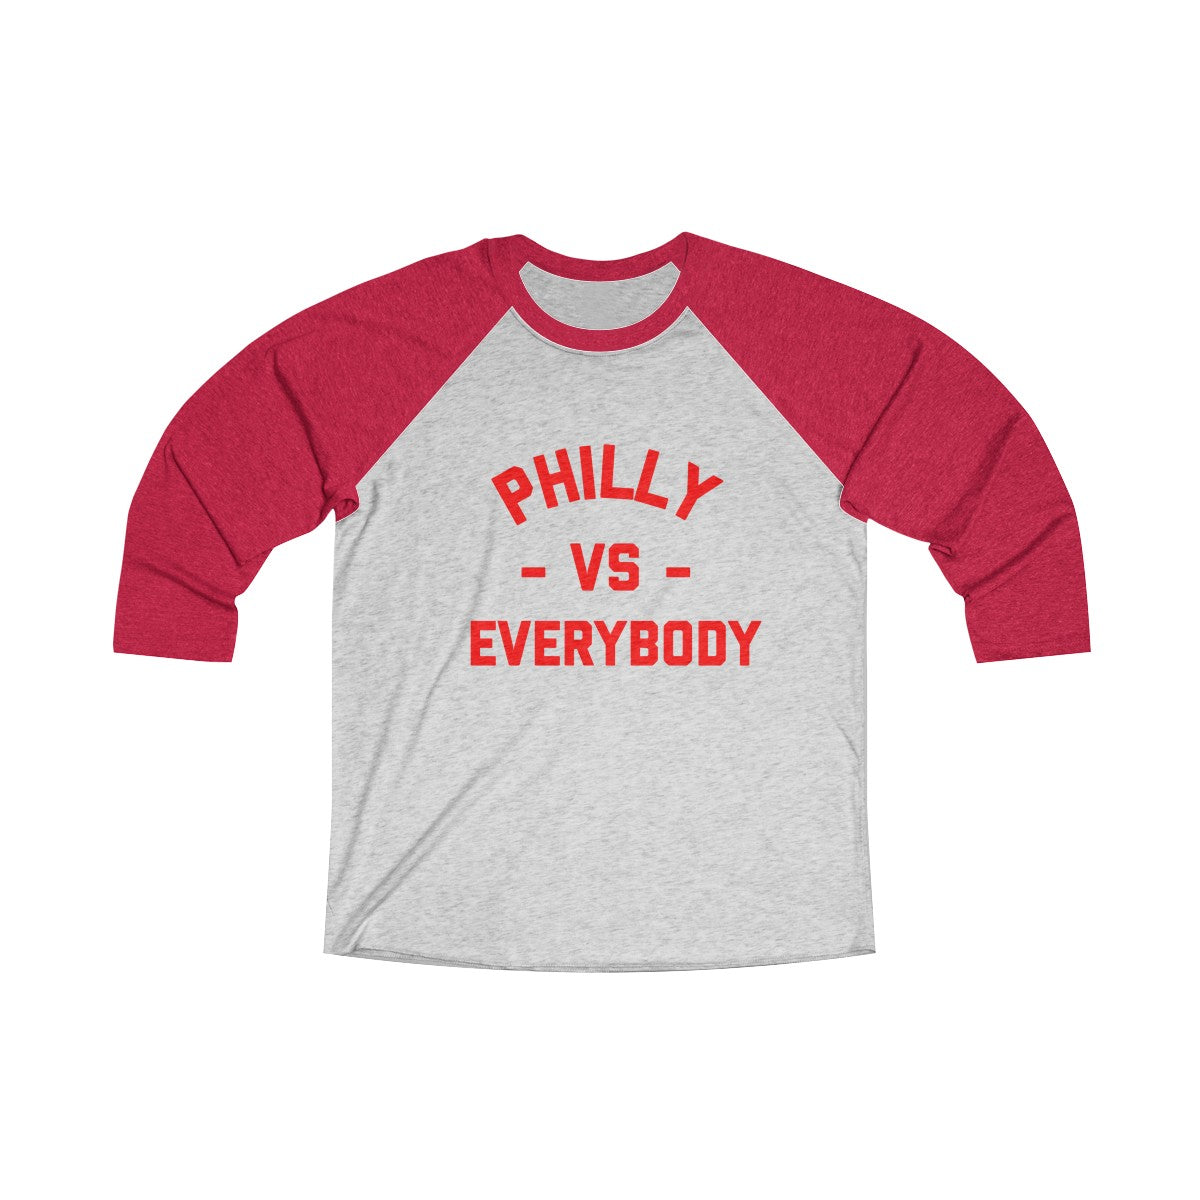 Philly vs. Everybody Baseball Edition Unisex Tri-Blend 3/4 Raglan Tee